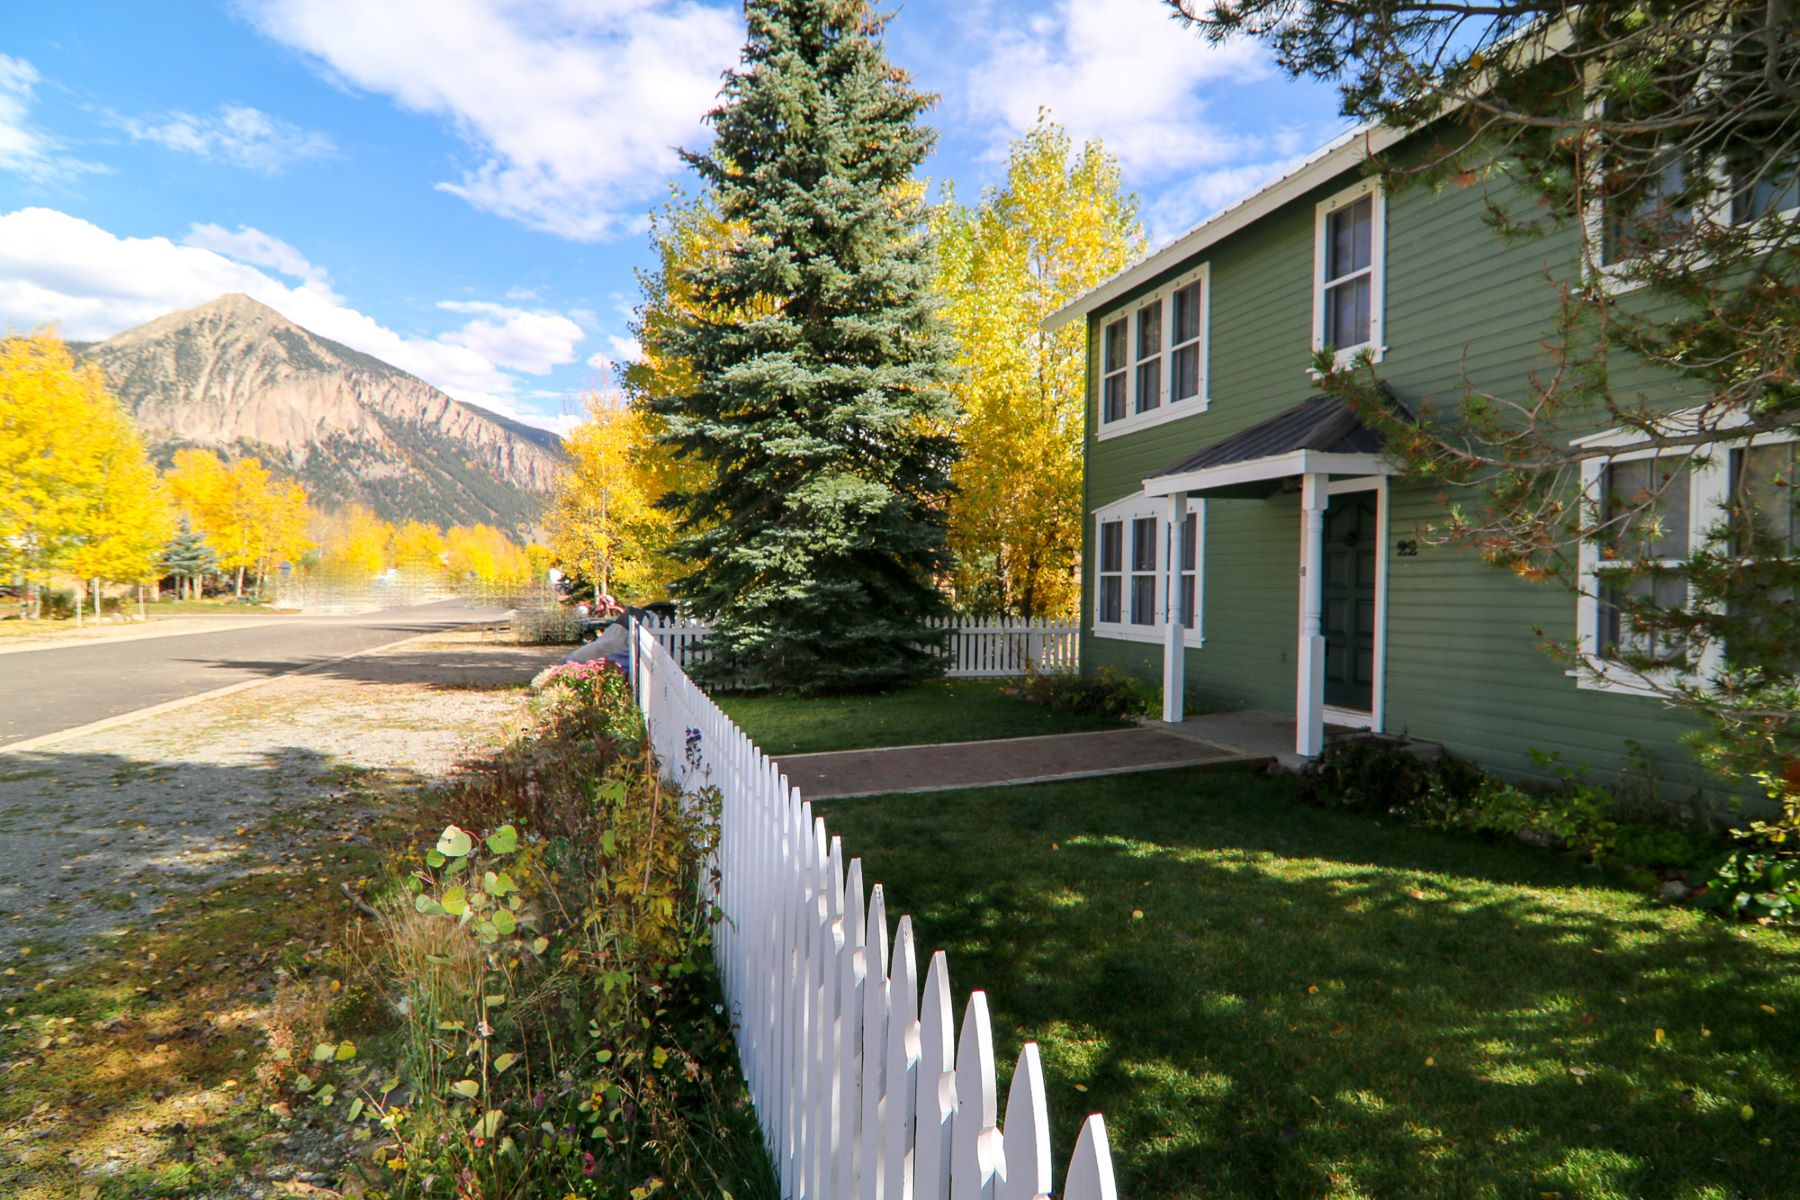 Casa Unifamiliar por un Venta en Coveted West End Location 22 Teocalli Ave, Crested Butte, Colorado, 81224 Estados Unidos